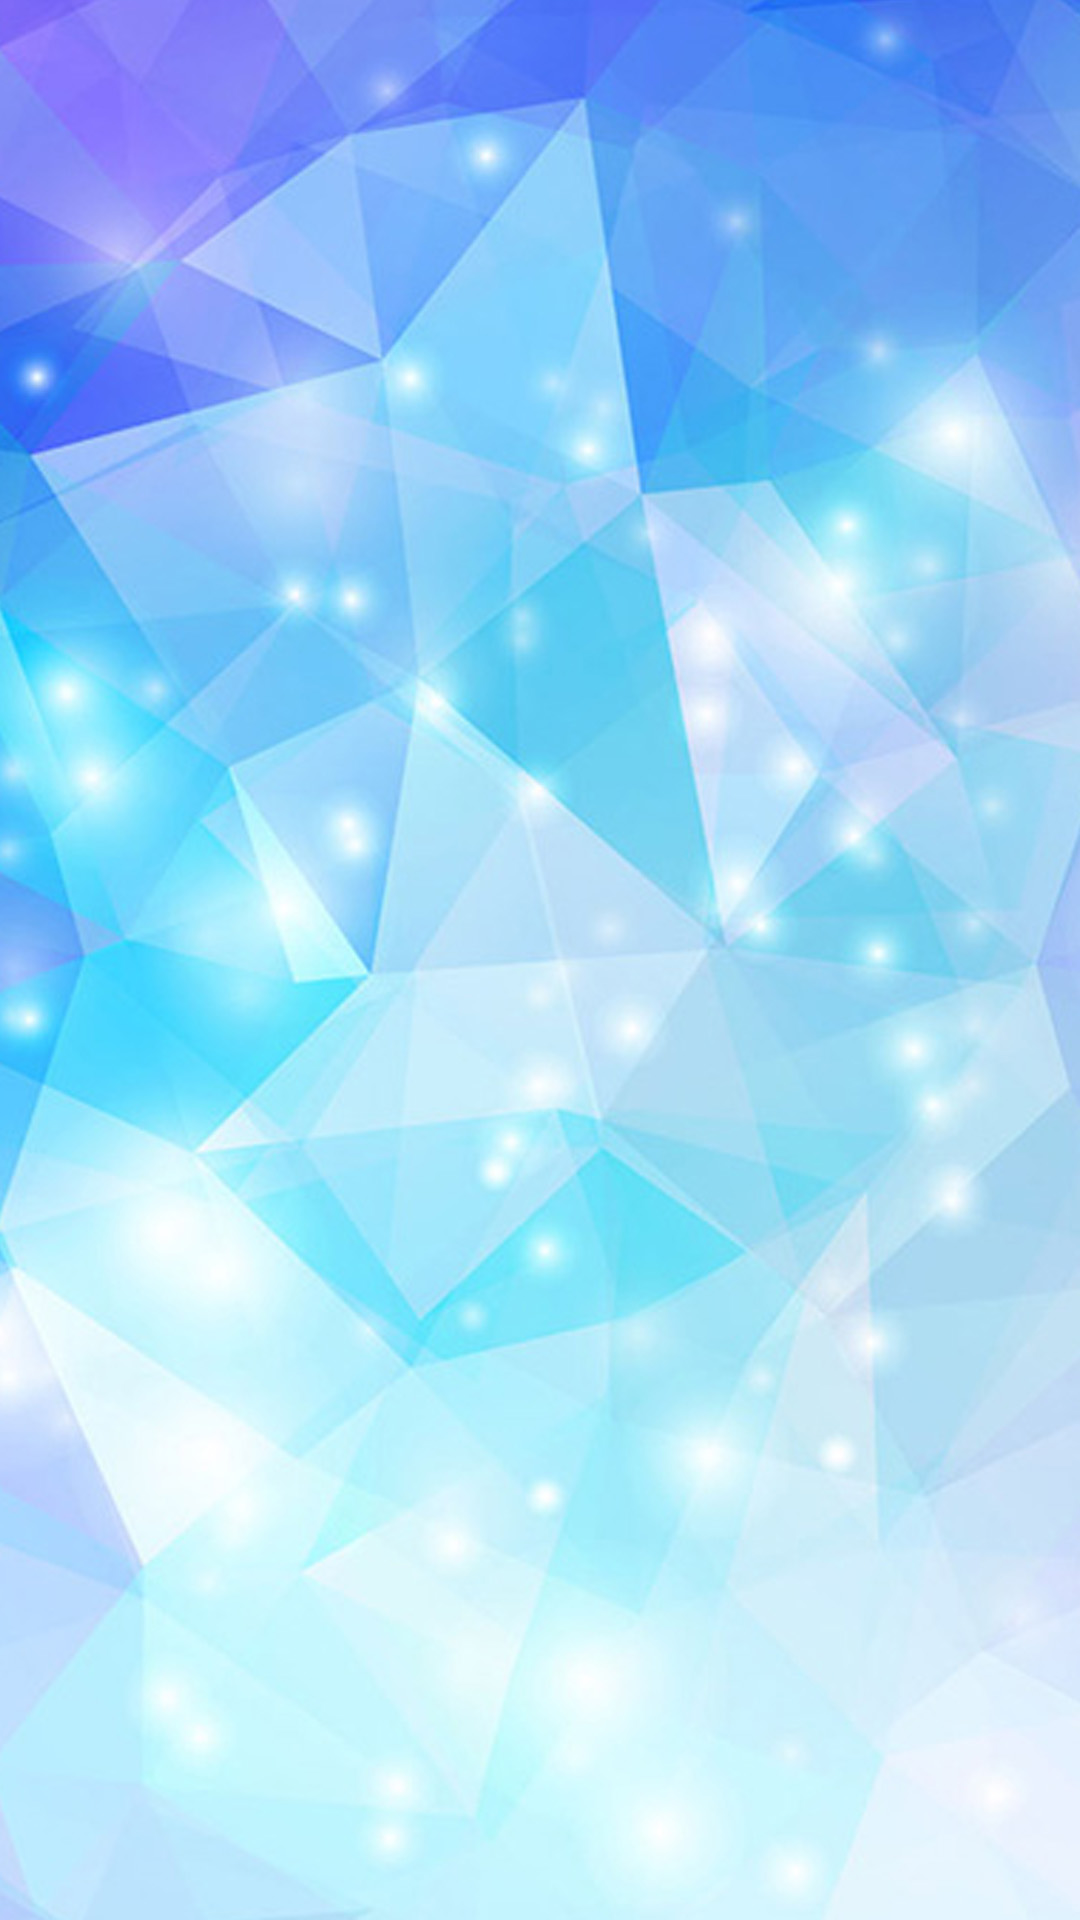 blue diamond geometric background vector h5  blue